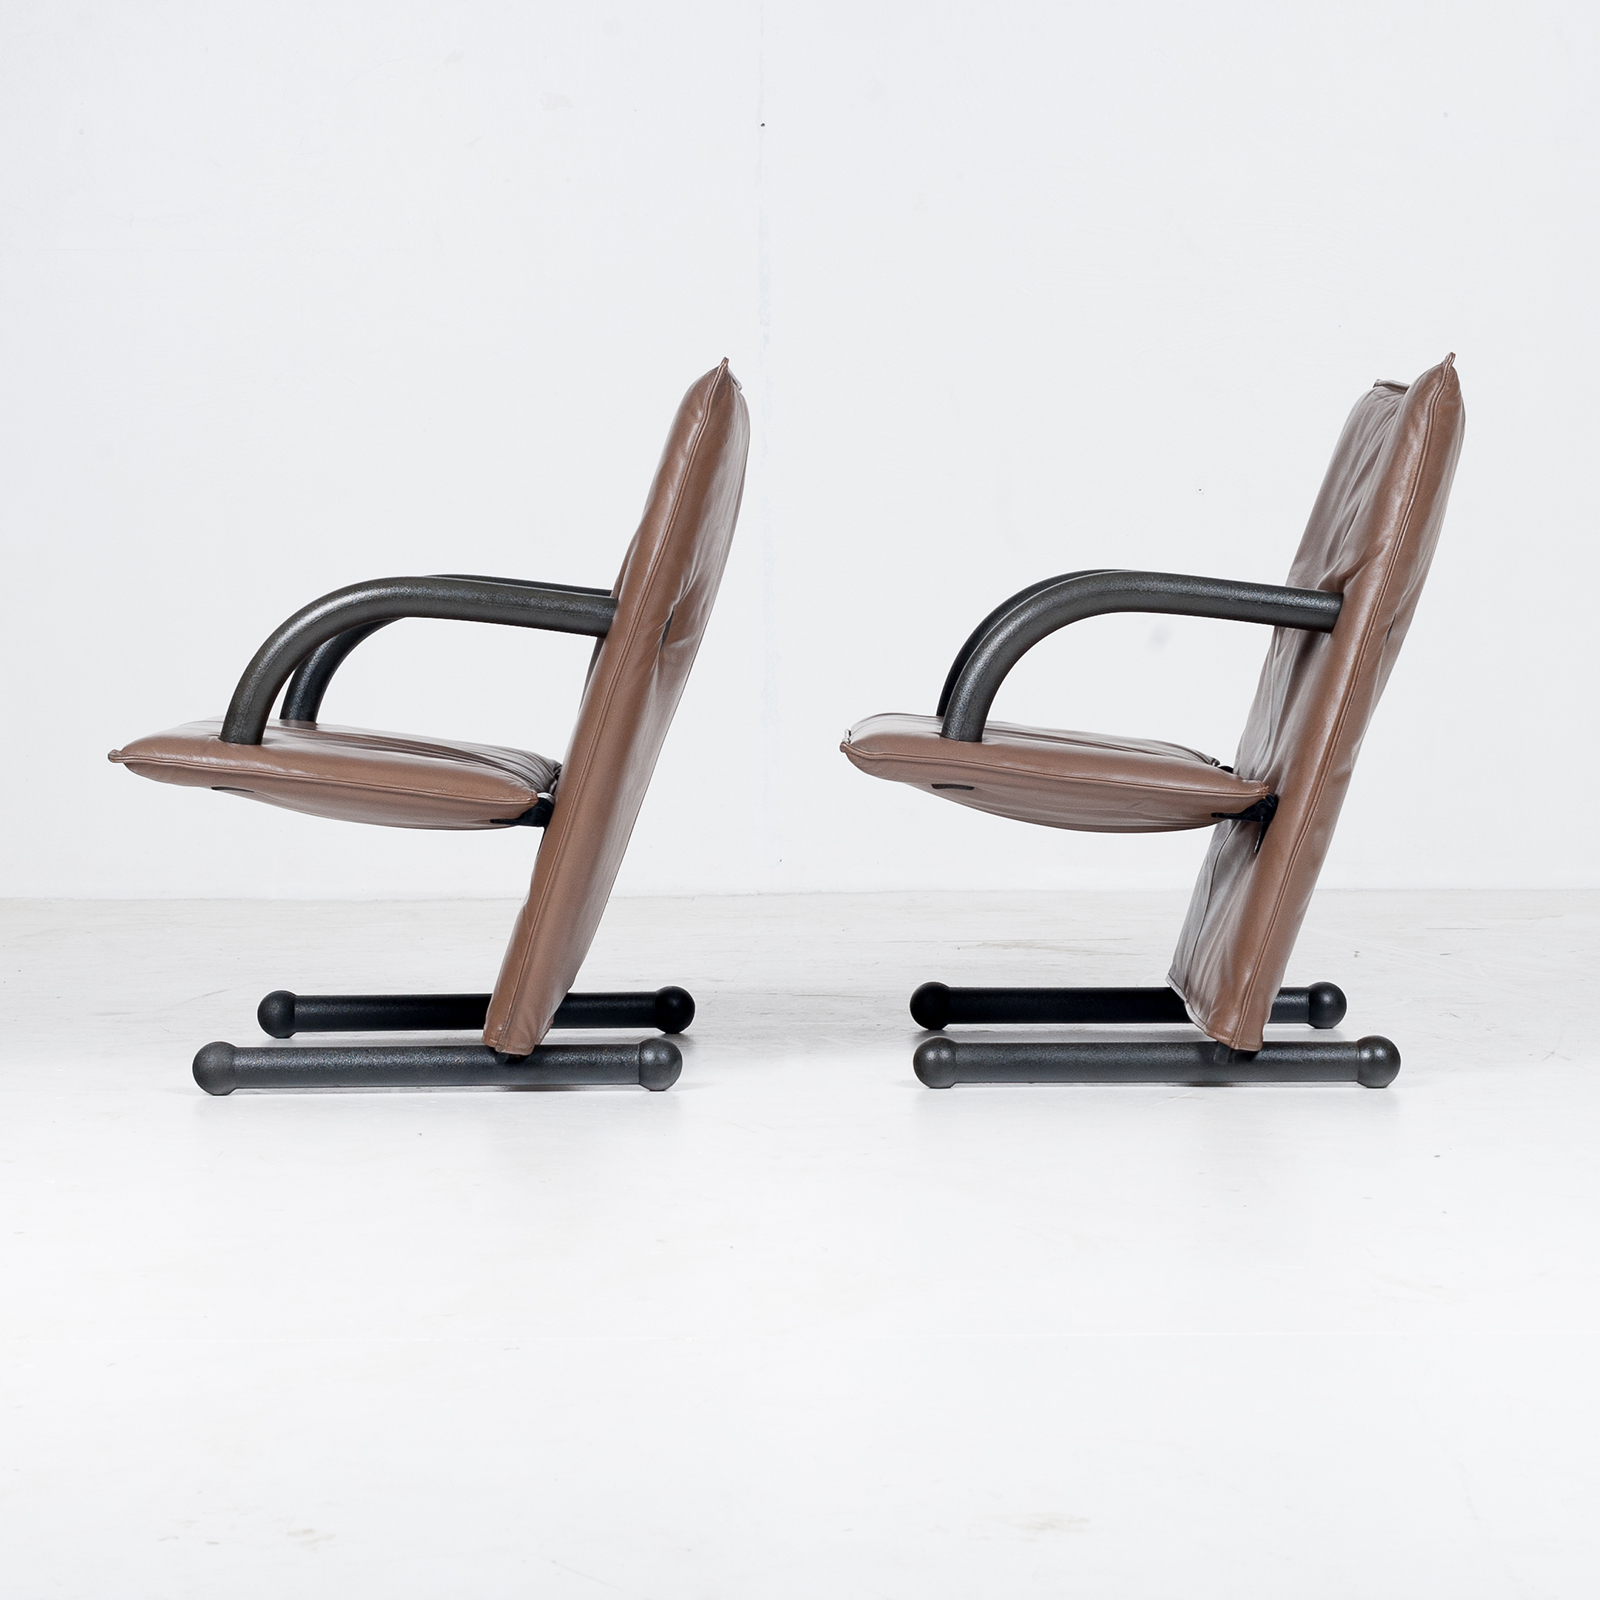 Model T Line Chair In By Burkhard Vogtherr For Arflex In Brown Leather, 1980s, Italy75